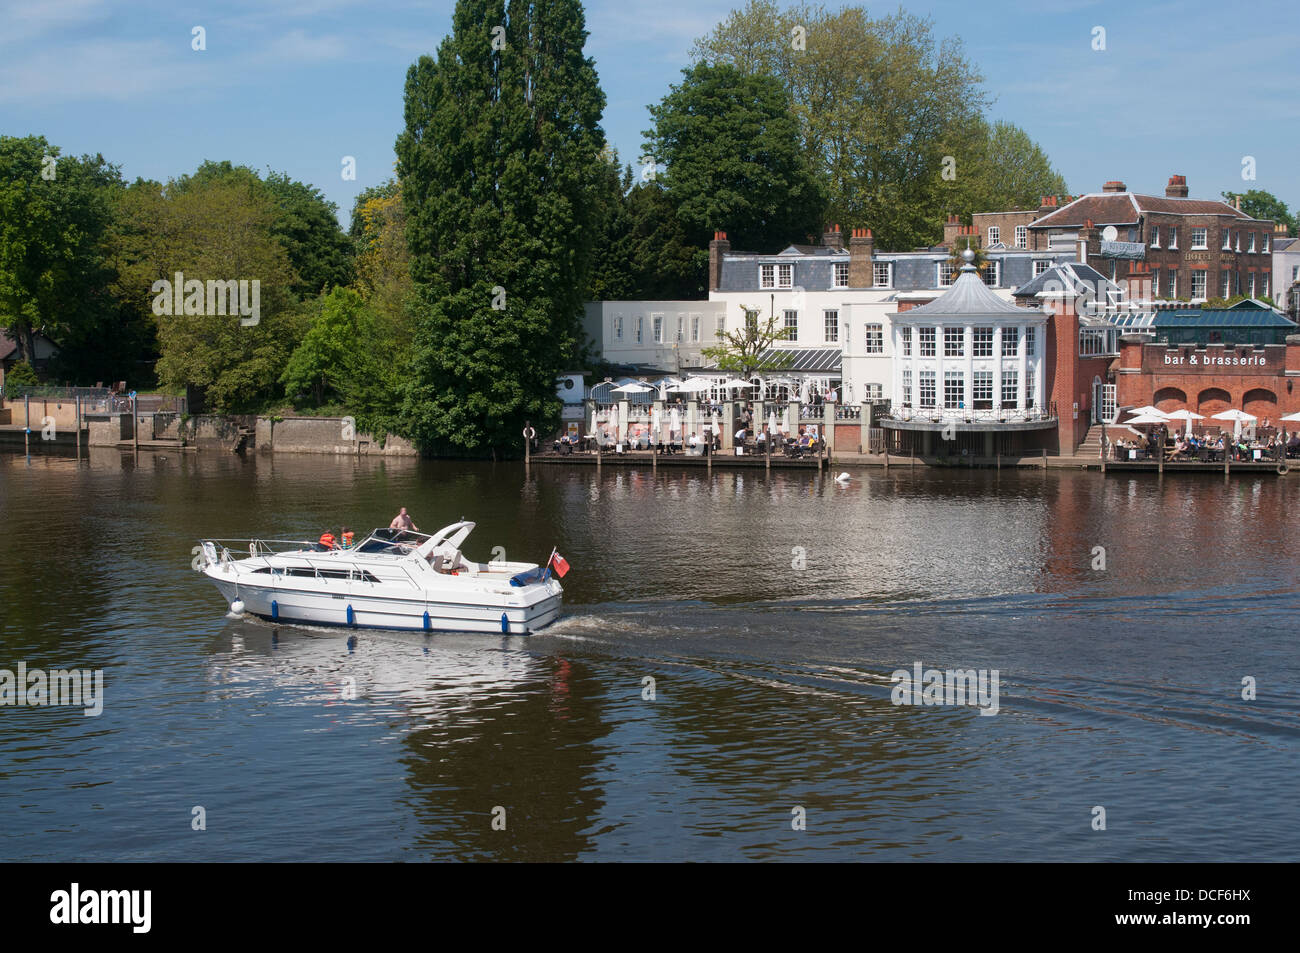 Boat on River Thames at Hampton Court, East Molesey in Middlesex with a view over the River's Edge Bar and Brasserie - Stock Image